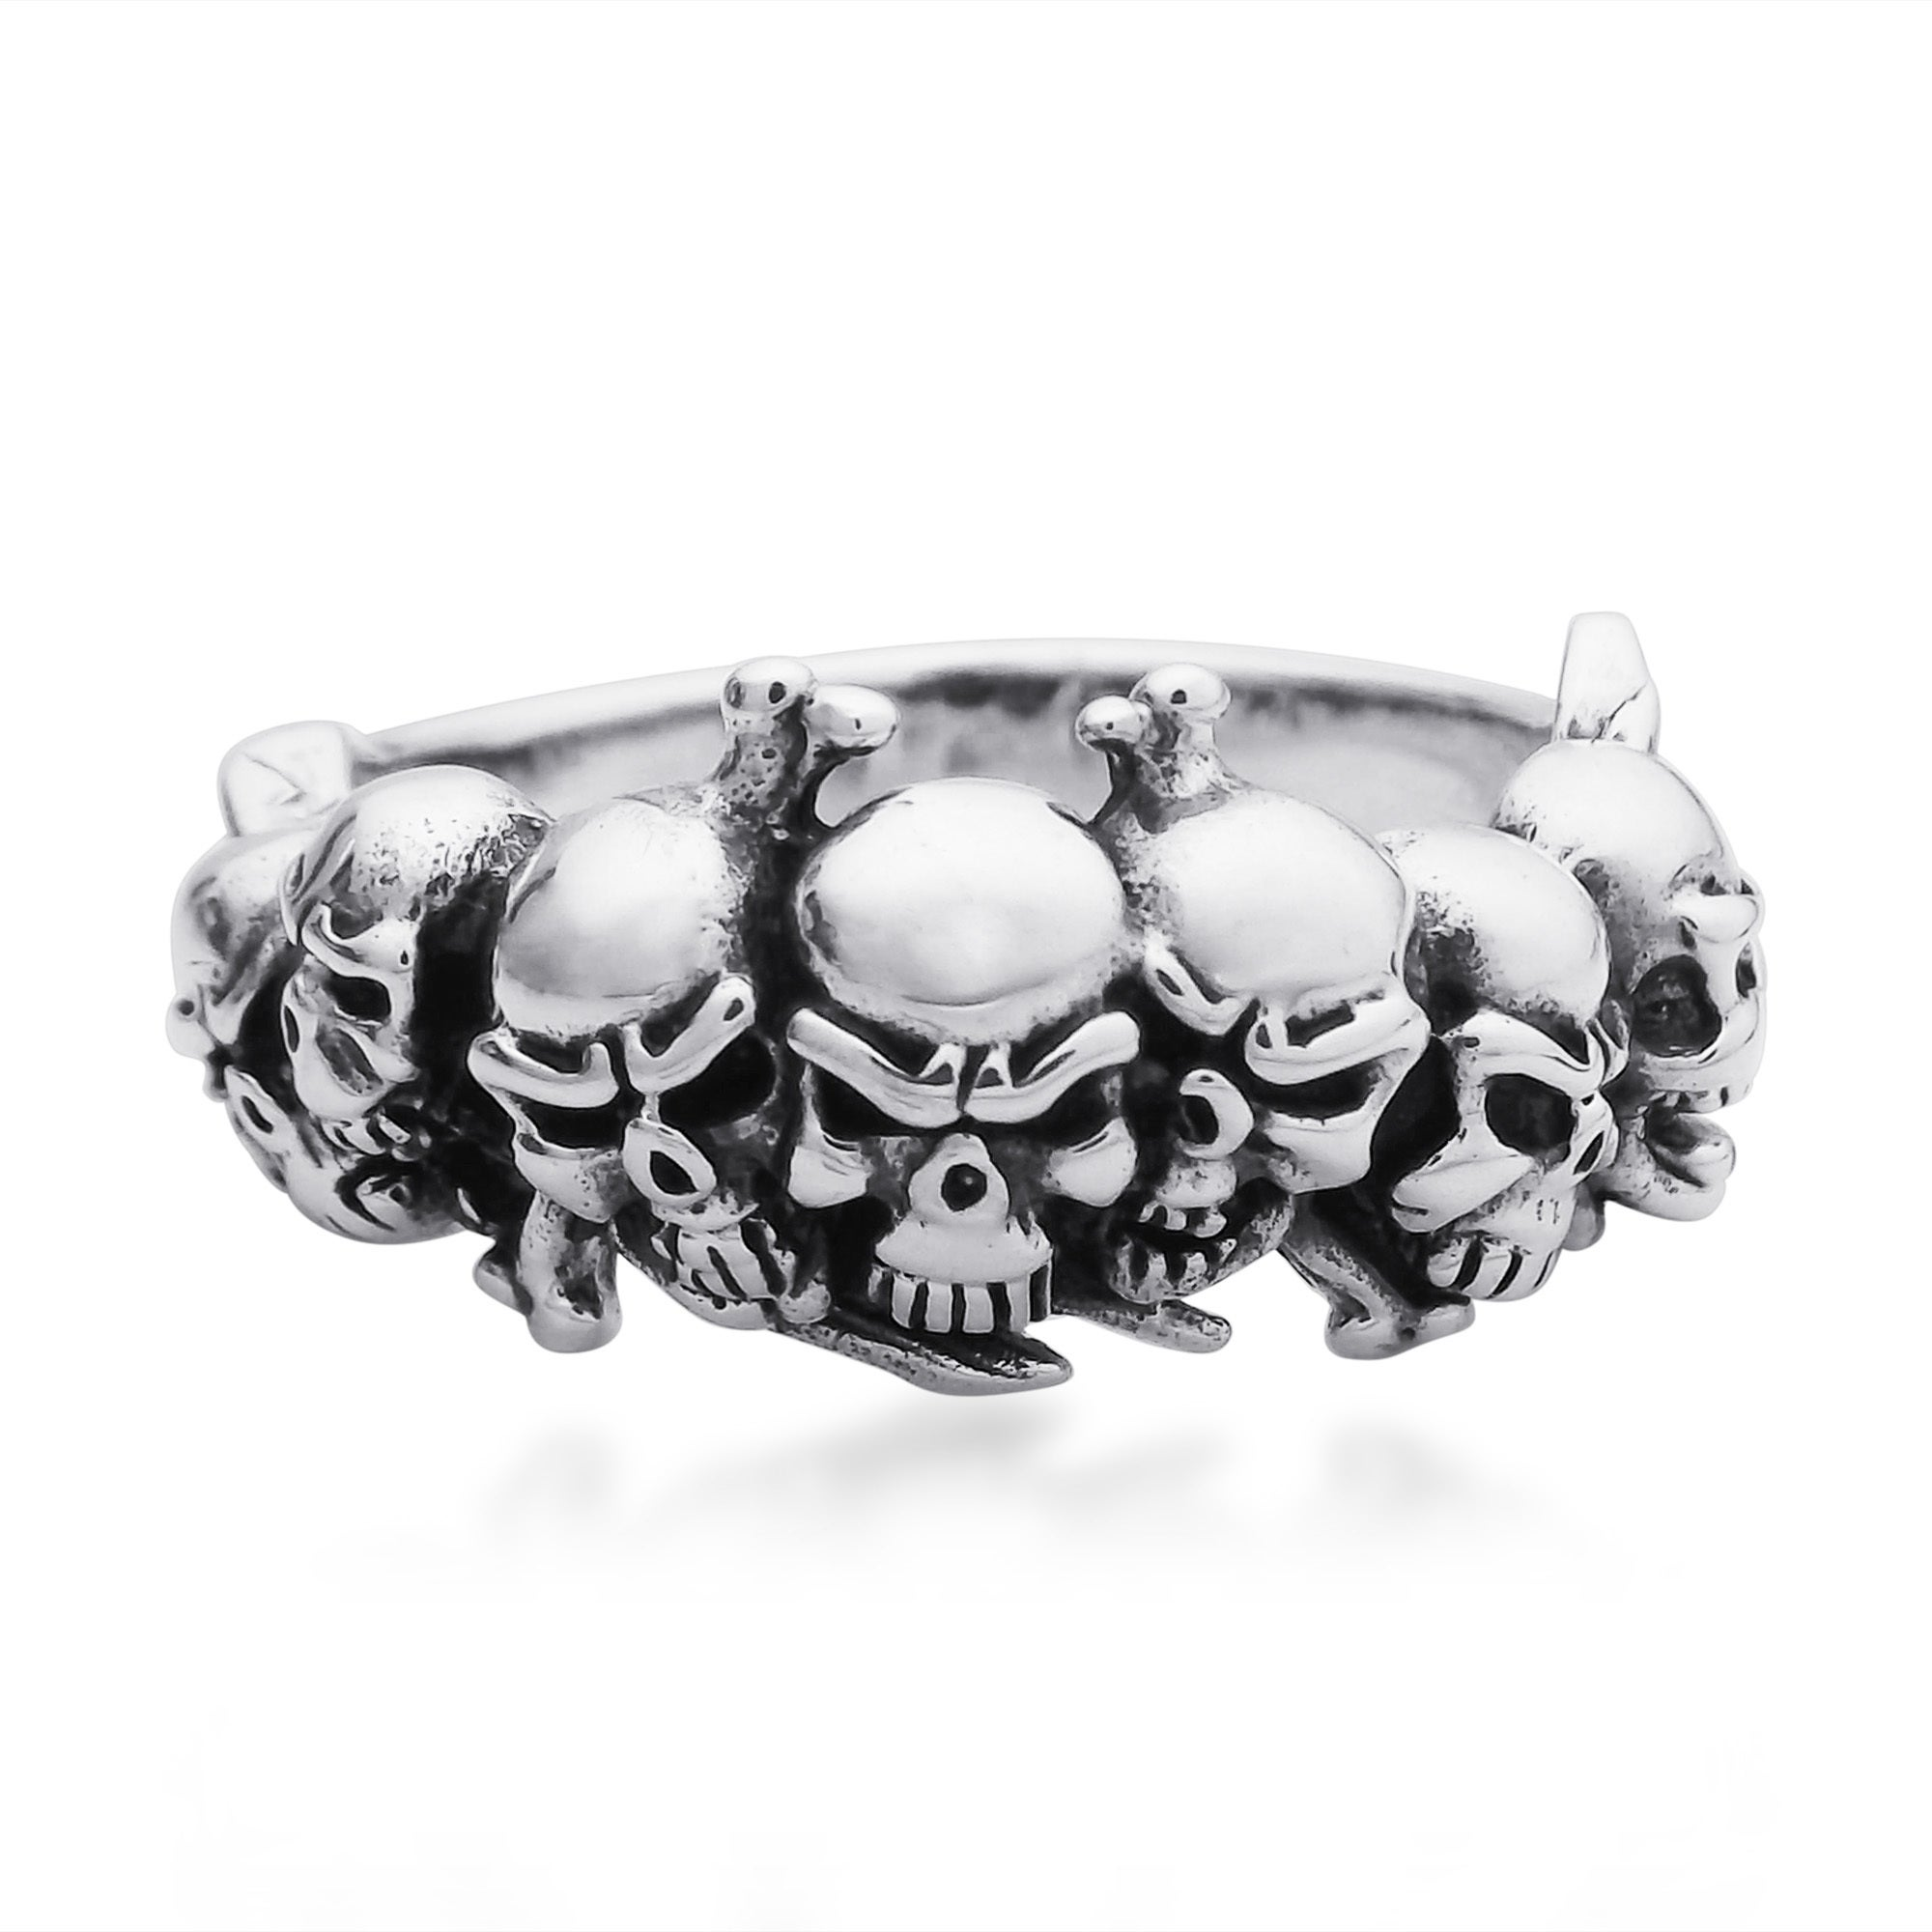 Handmade Ominous Pirate Skull and Crossbones  925 Sterling Silver Ring  (Thailand)